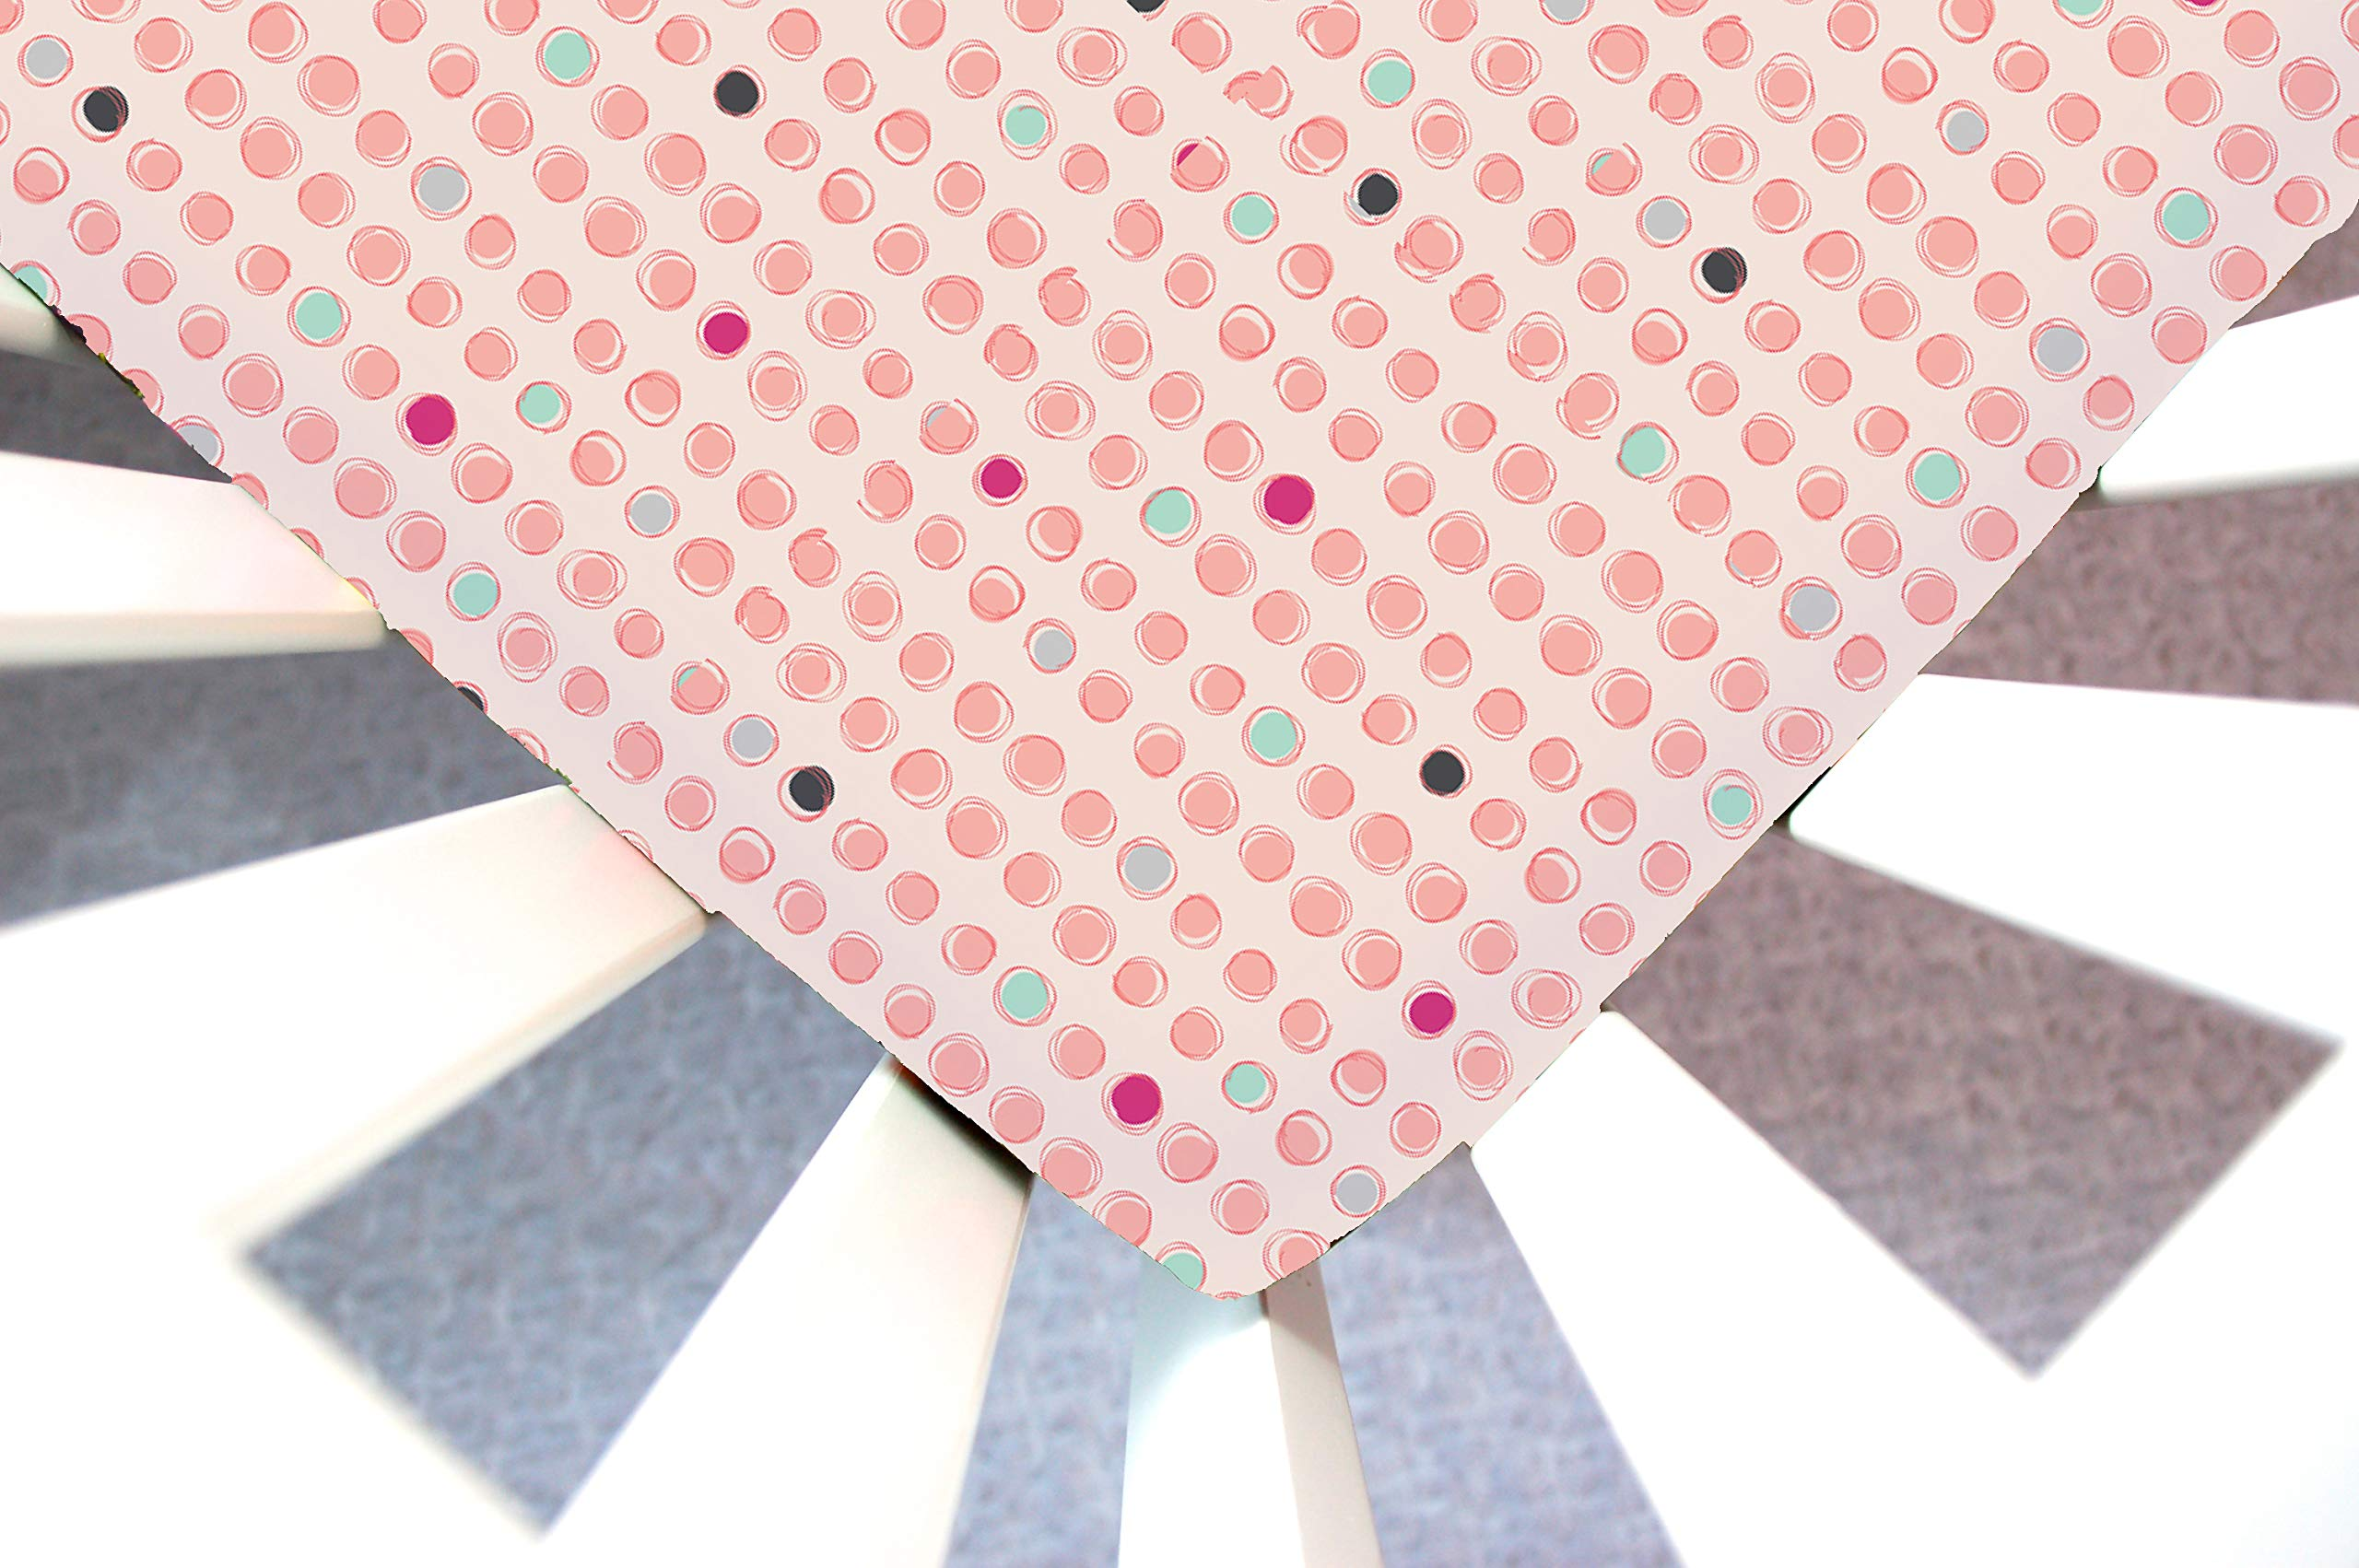 Little Moose by Liza Handmade Sheet Made to Fit a Halo Bassinet Dots Burst Melon (Polka Dot) This Sheet was Not Created or Sold by Halo. by Little Moose By Liza LLC